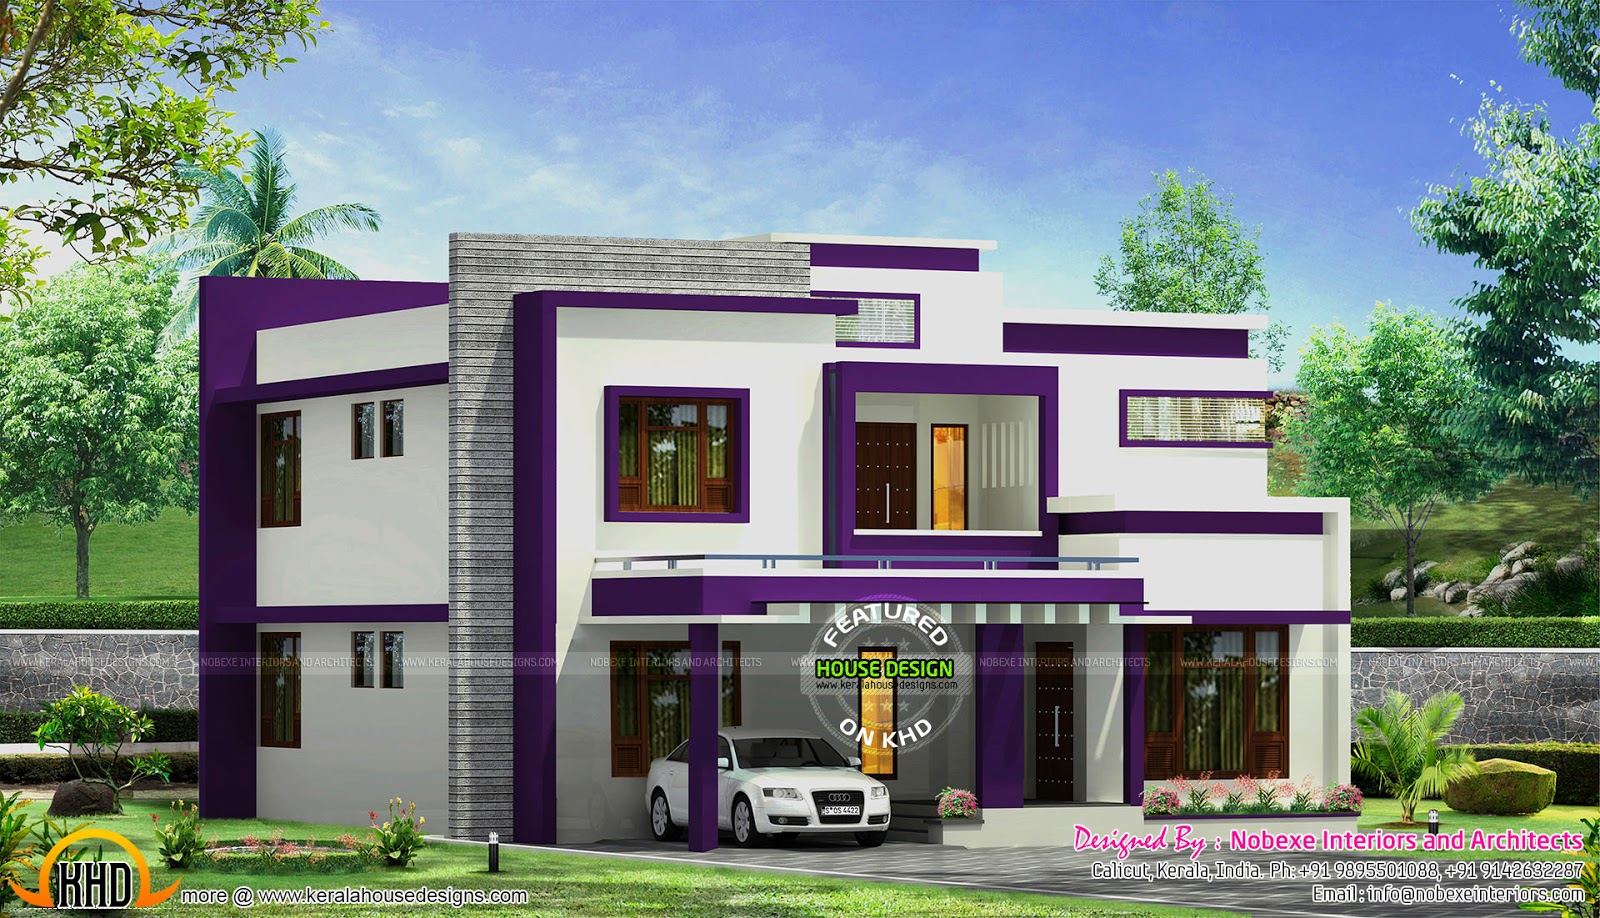 Contemporary home design by nobexe interiors kerala home for Home building design